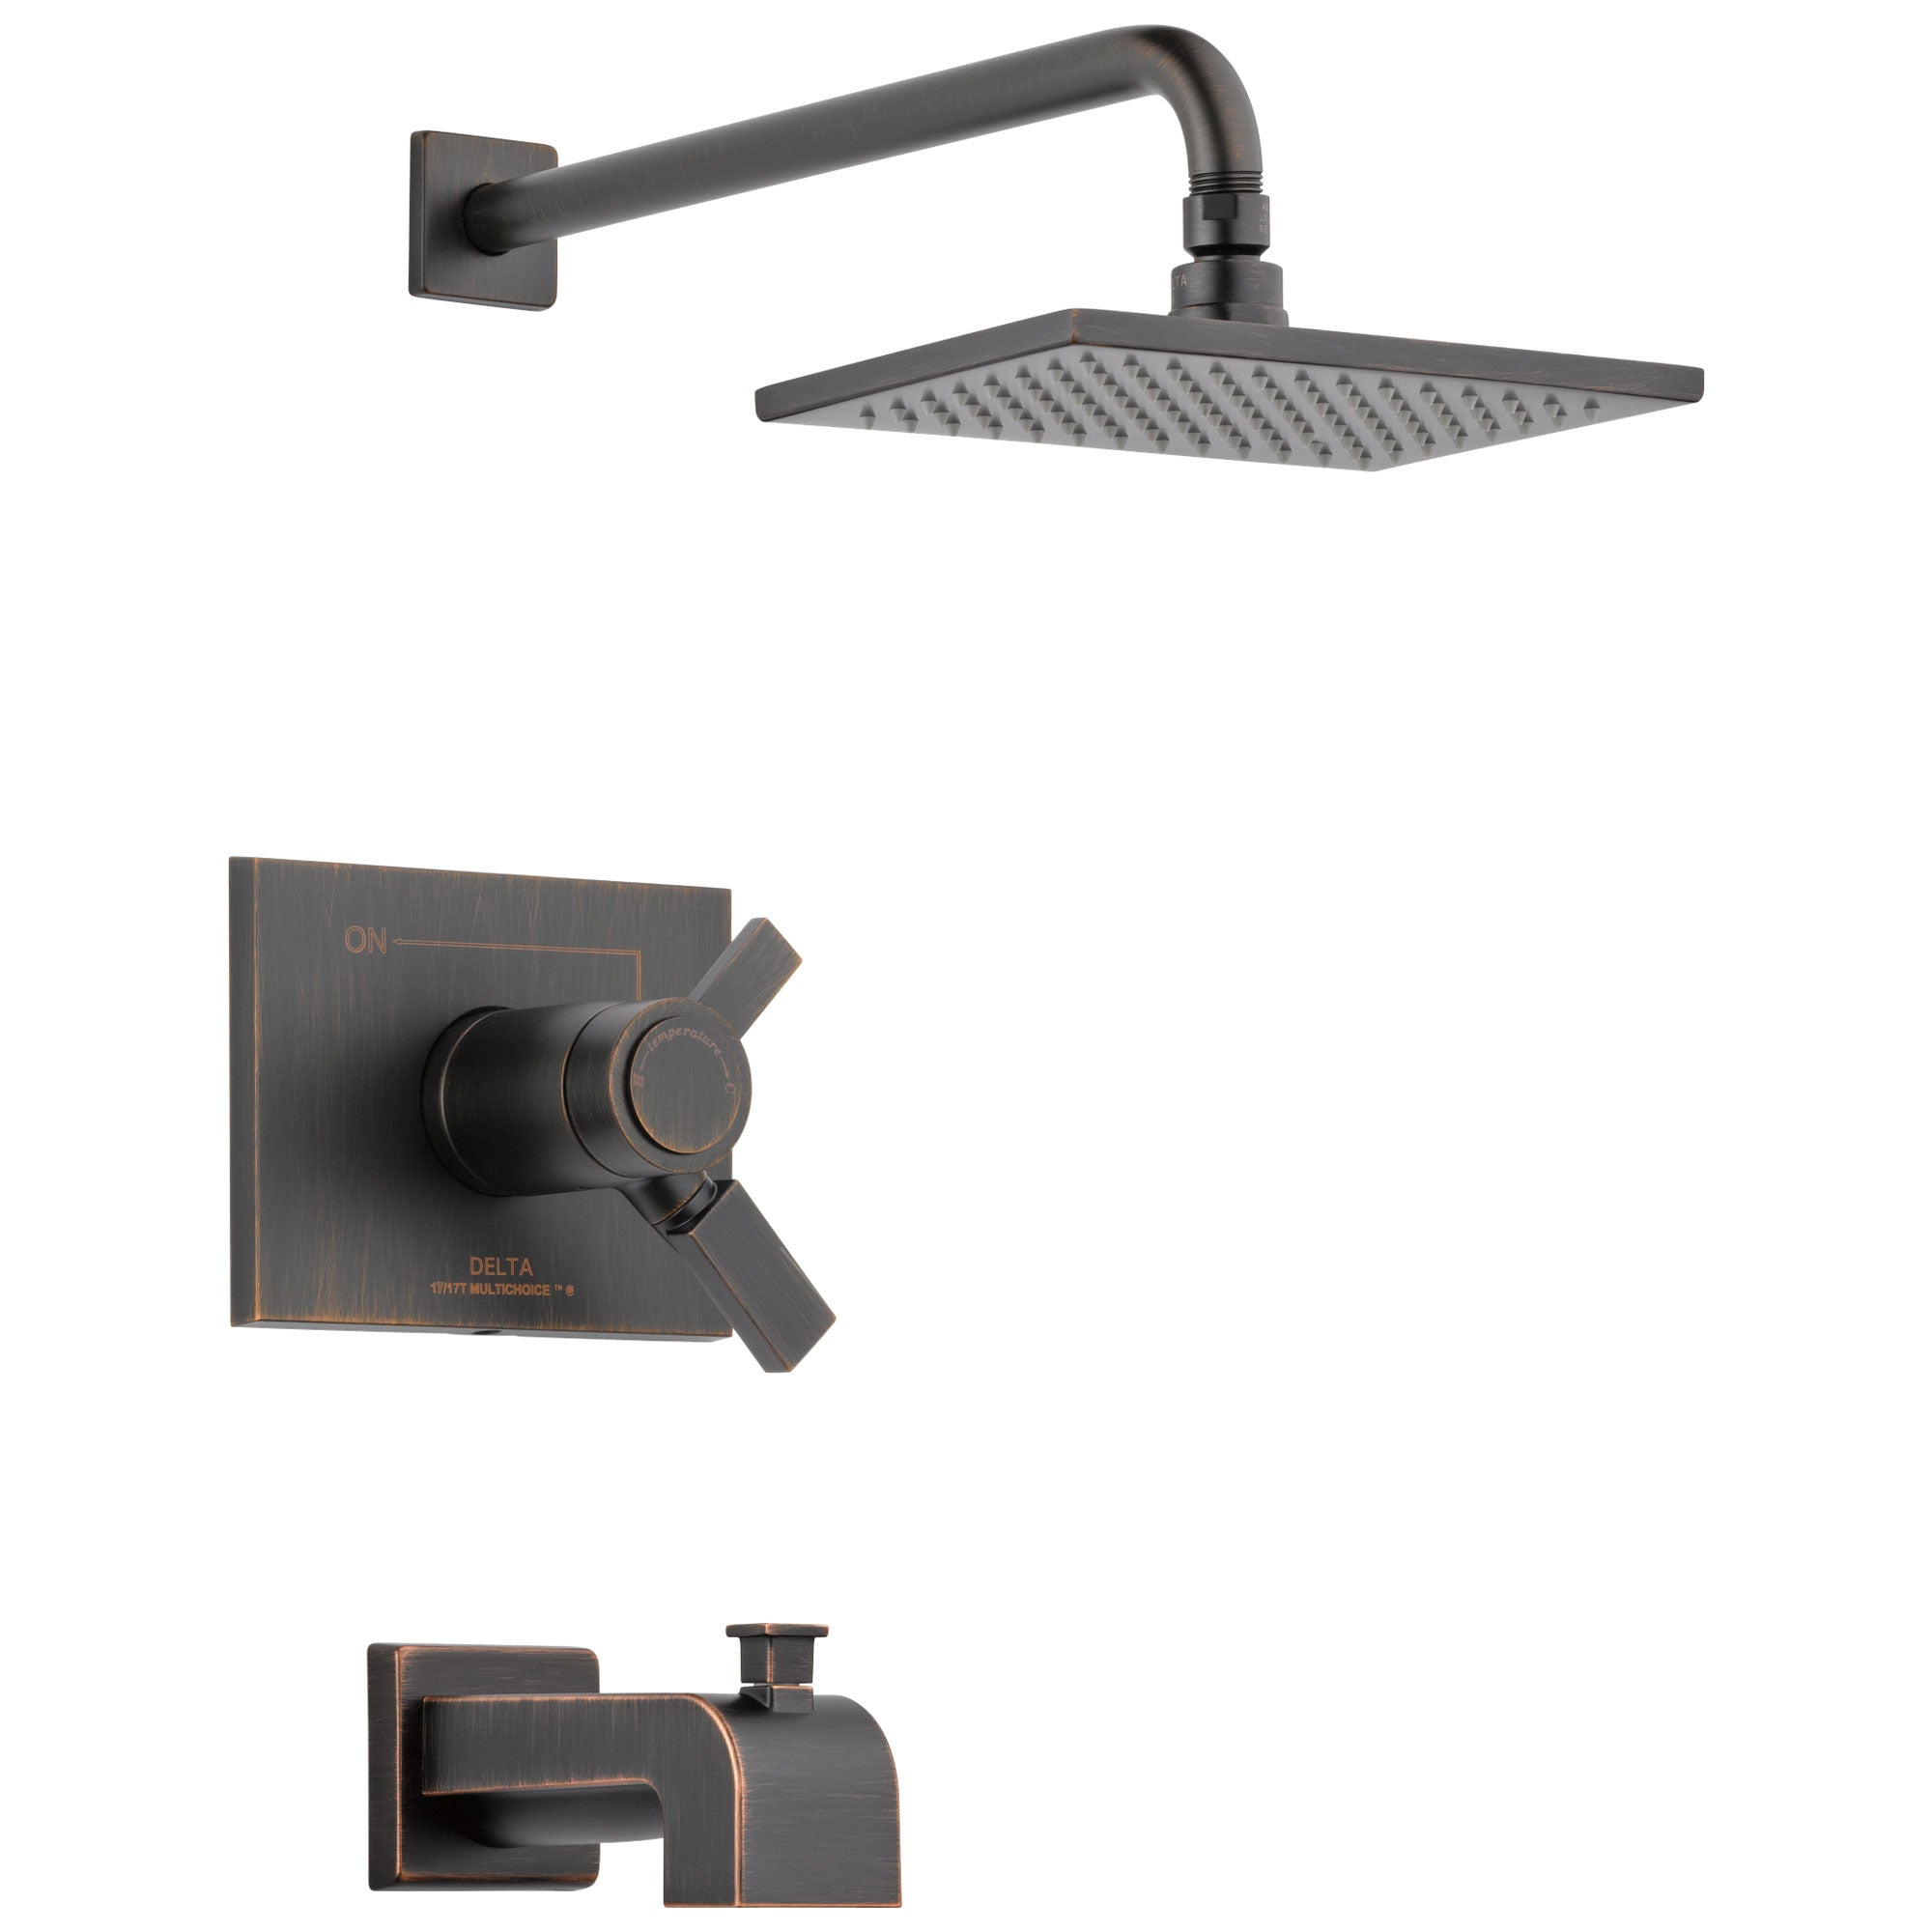 Delta Vero Venetian Bronze Finish Water Efficient Thermostatic Tub & Shower Faucet Combo Includes Cartridge, Handles, and Valve with Stops D3240V